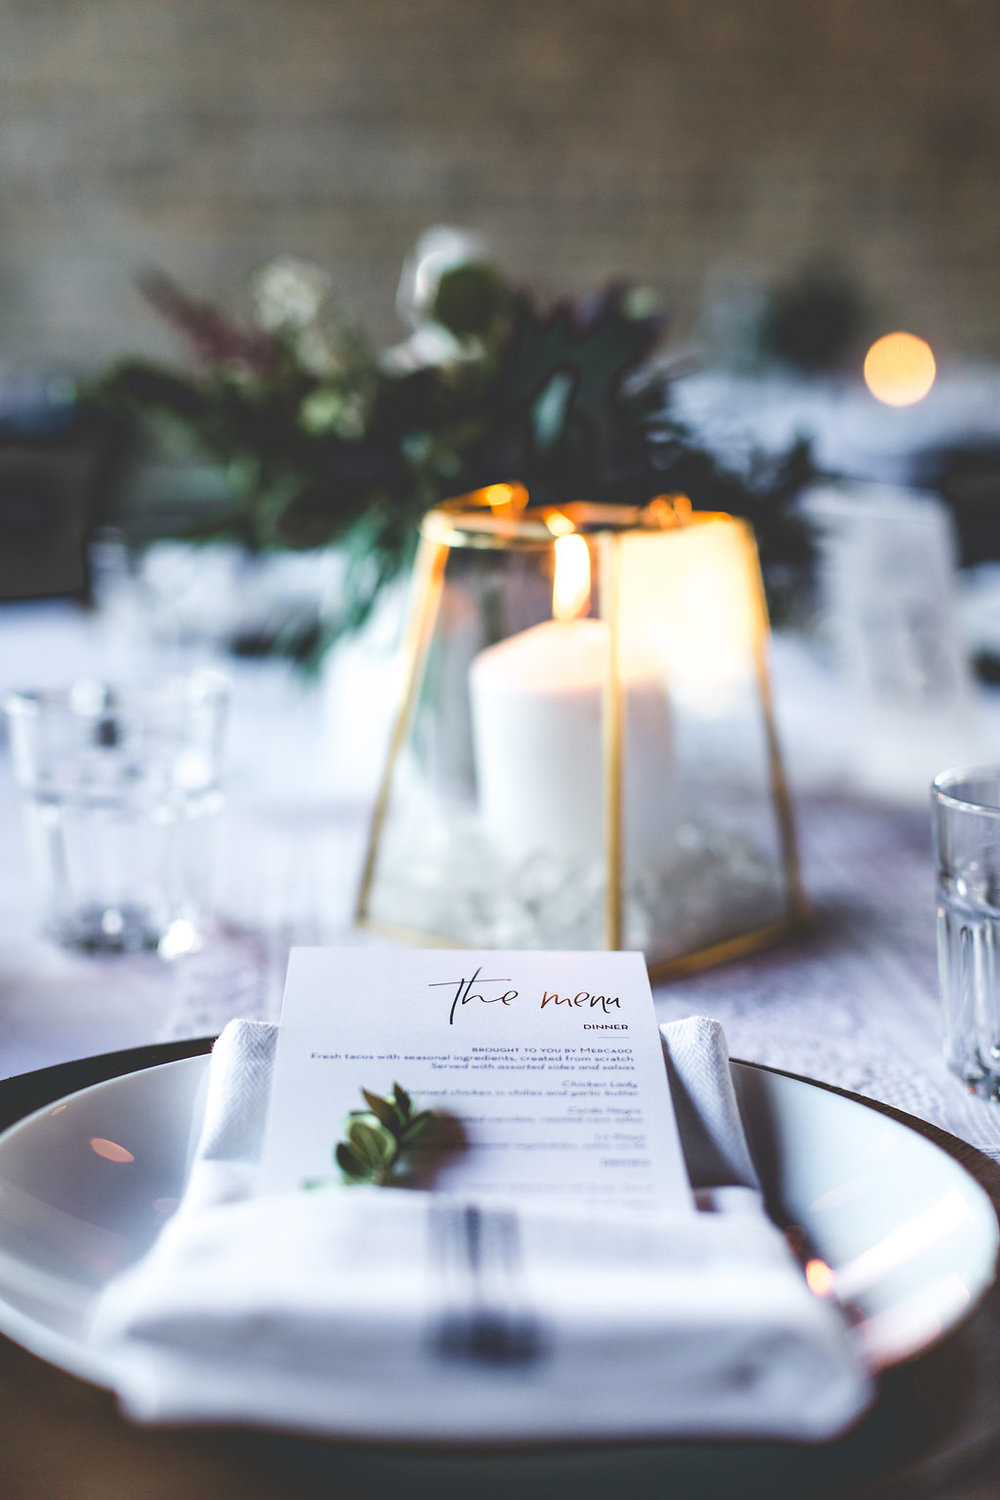 Aaron Rice Photography | Annunciation Ceremony | Day Block Wedding Reception | Sixpence Events and Planning Minnesota Wedding planner | wood charger | rosemary in the napkin | kitchen napkin | menu fold napkin | geometric pillar candle | table deco DIY